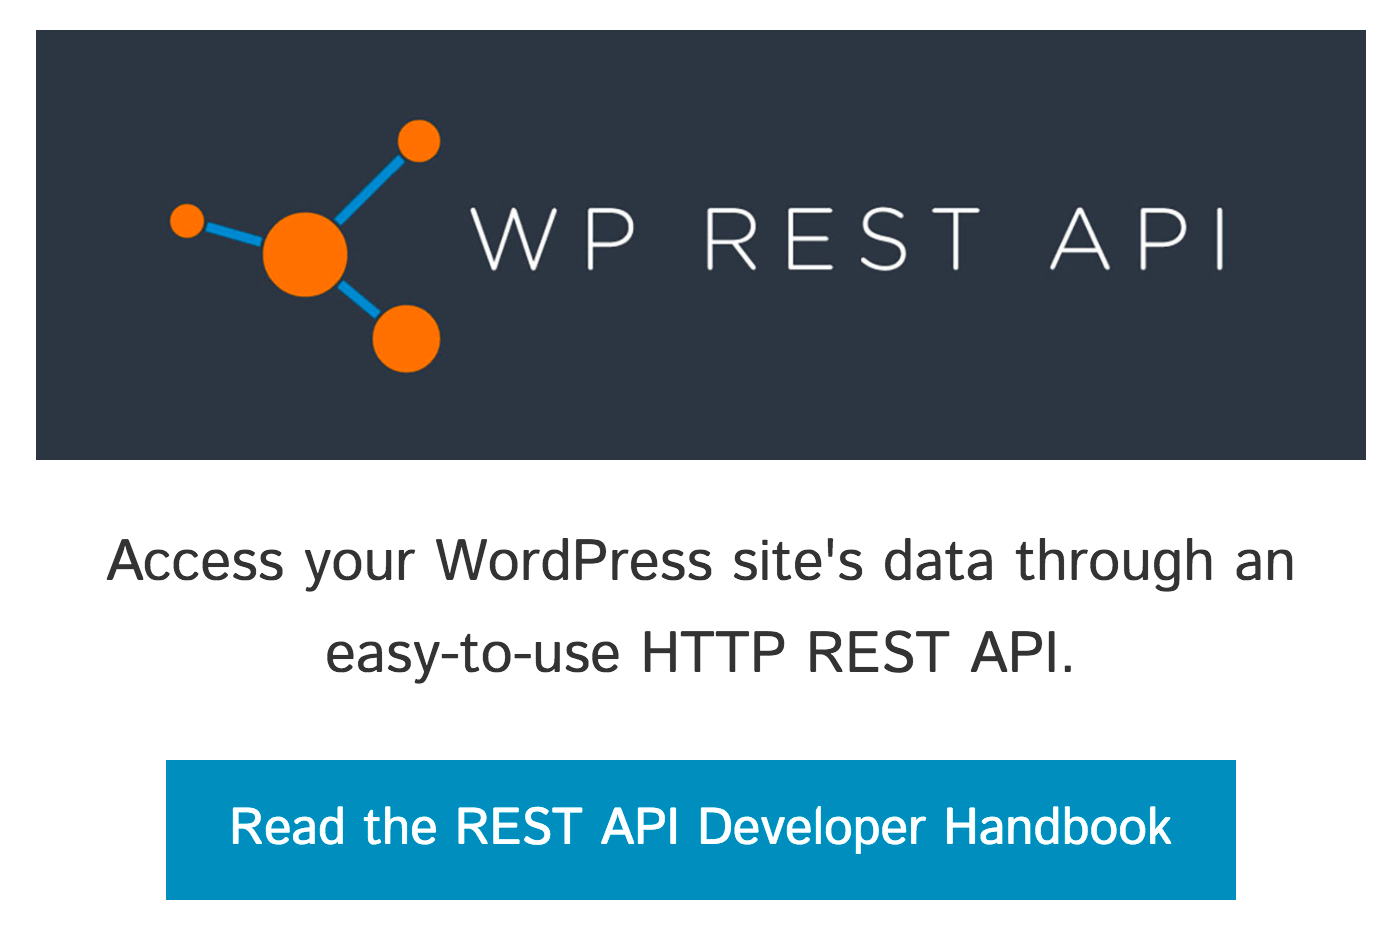 WP REST API project homepage